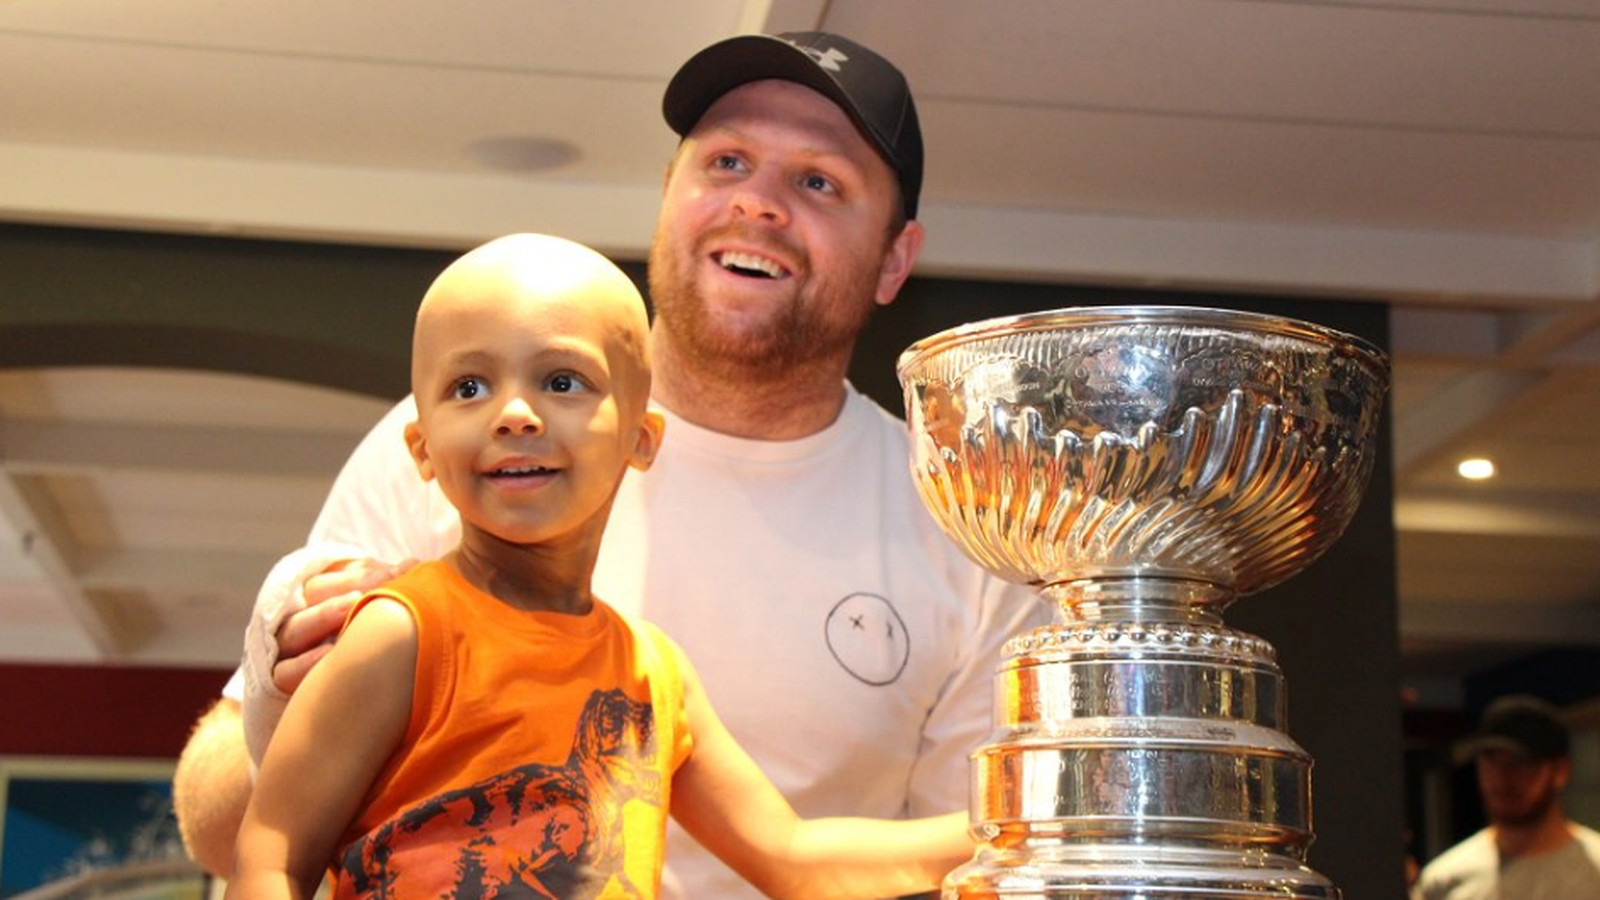 Sickkids_thehospital_on_twitter___sickkids_was_buzzing_with__stanleycup_fever_today__thx_for_visiting_our_patients___families__pkessel81__nhl_https___t.co_omyskngsw3_.0.0